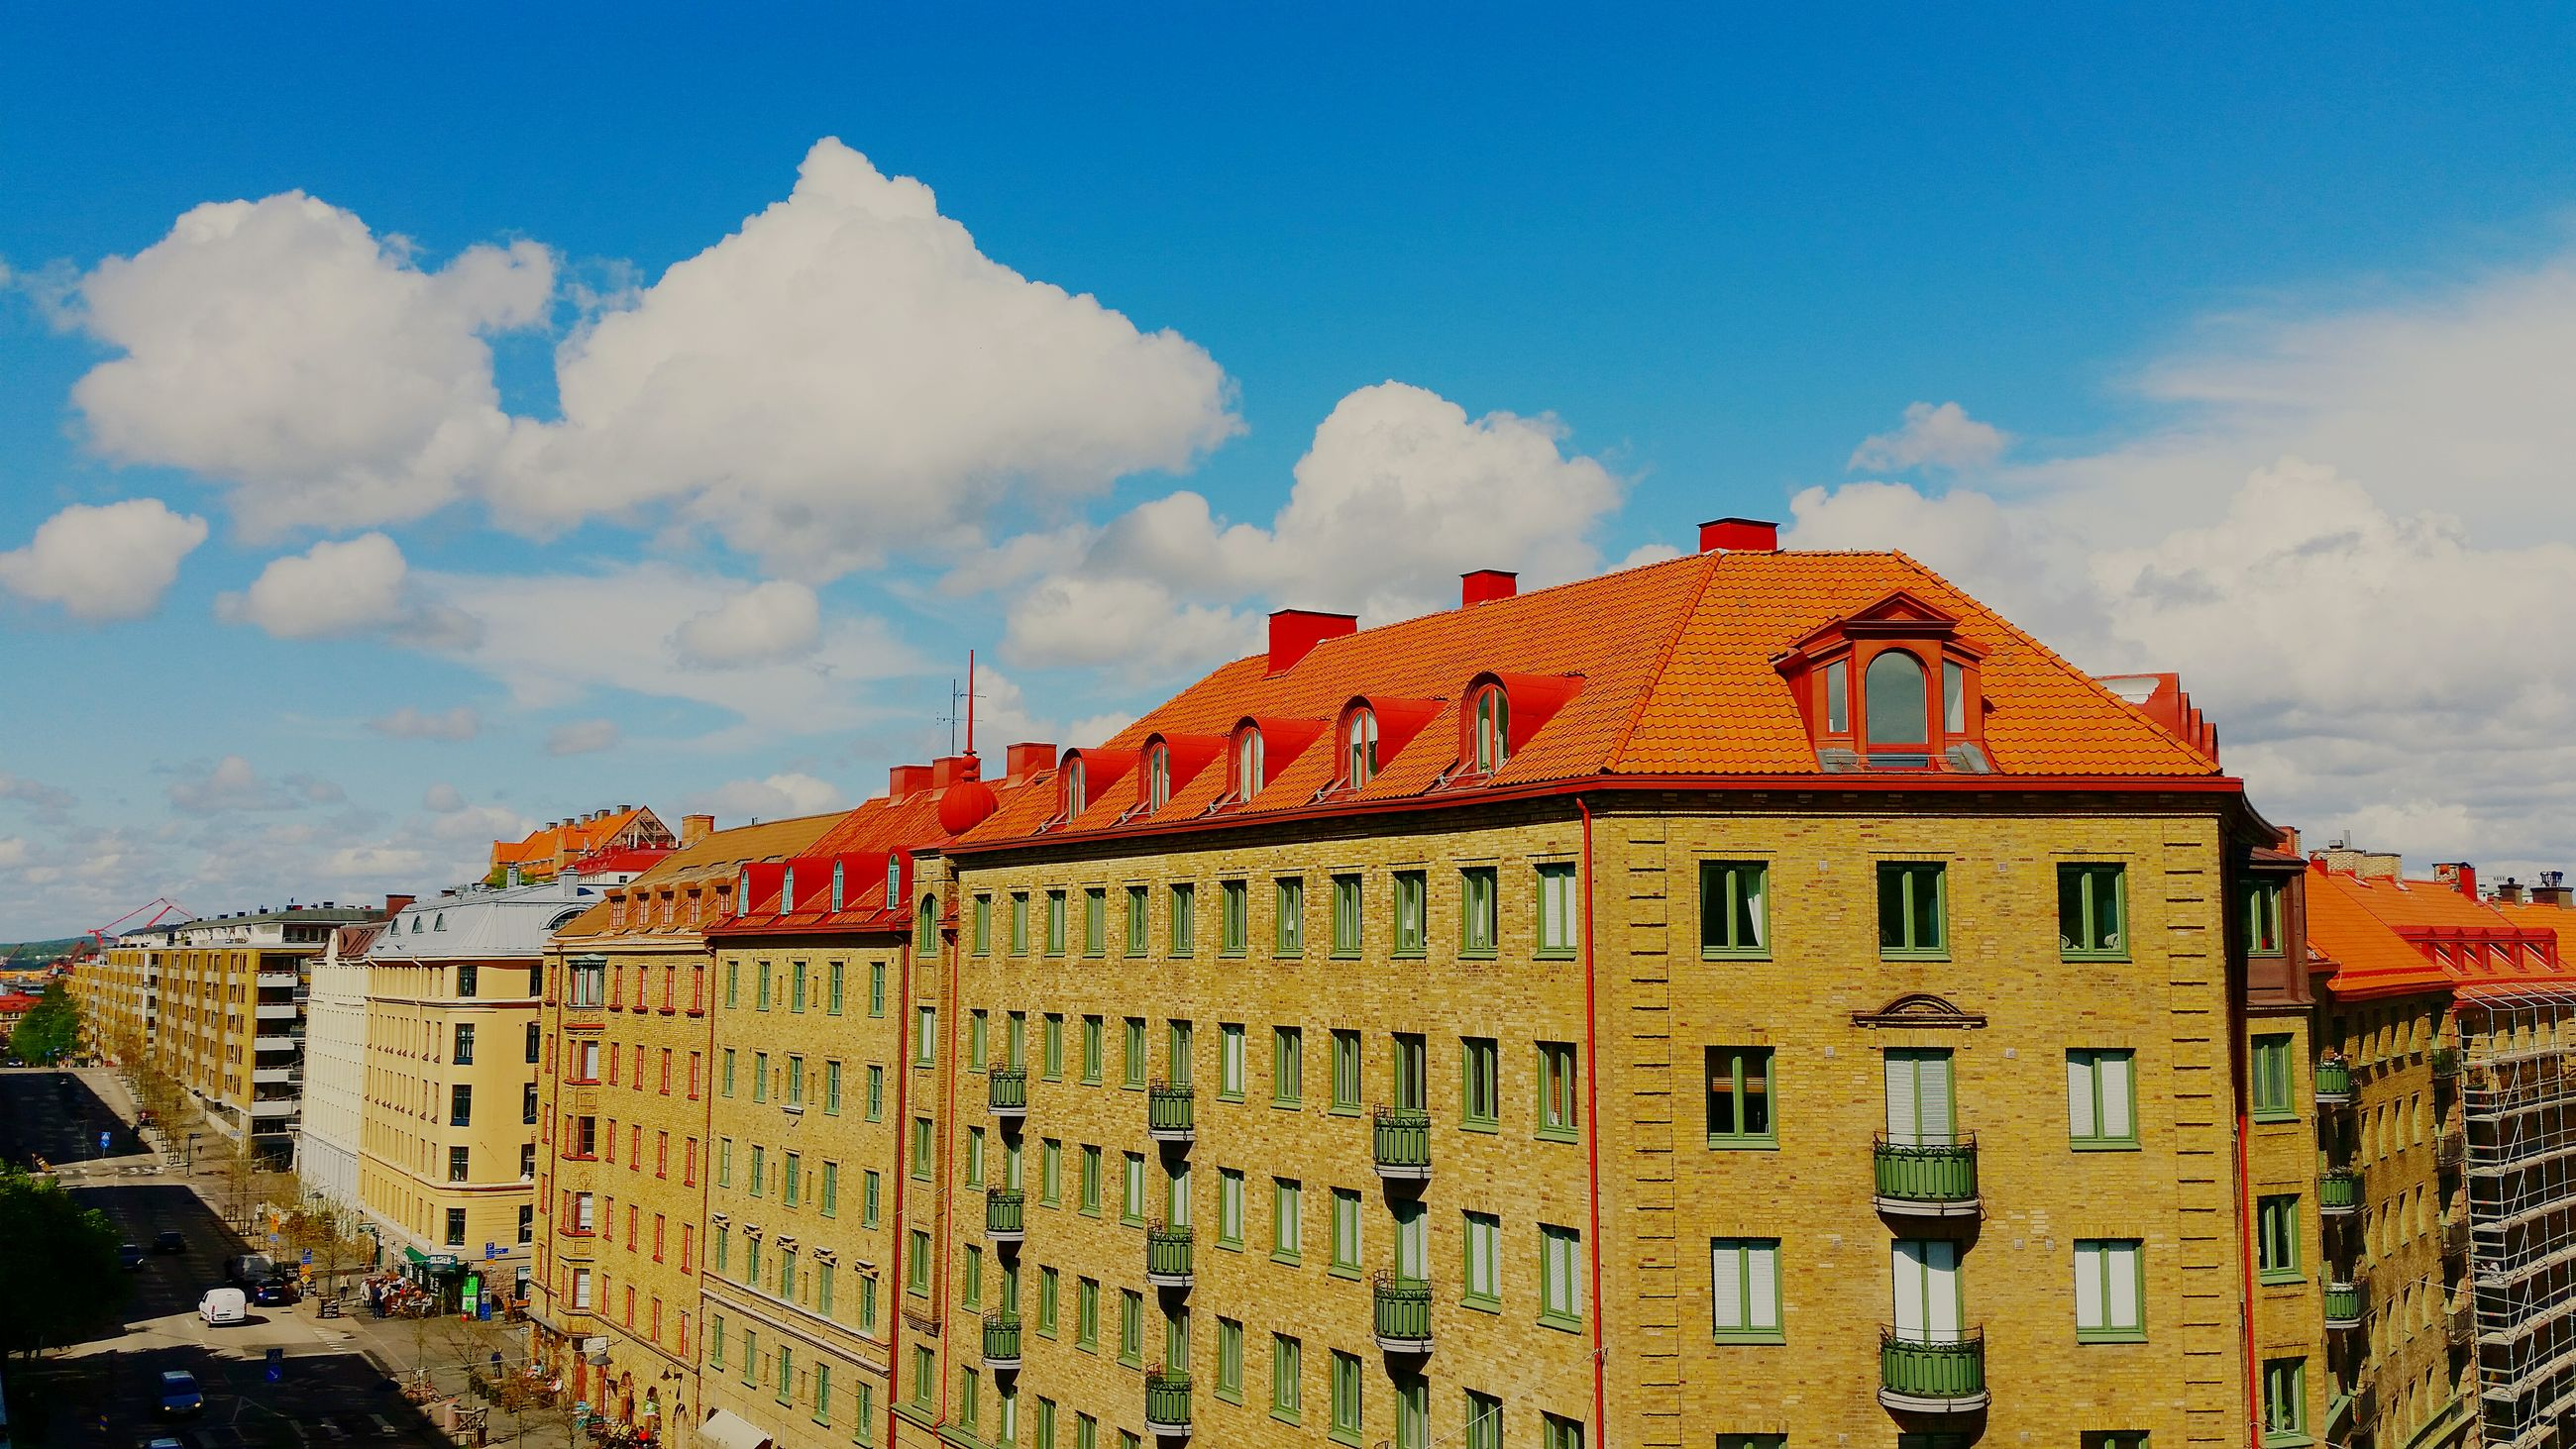 architecture, building exterior, built structure, sky, cloud - sky, window, cloud, residential structure, blue, low angle view, residential building, city, building, day, outdoors, house, exterior, no people, cloudy, sunlight